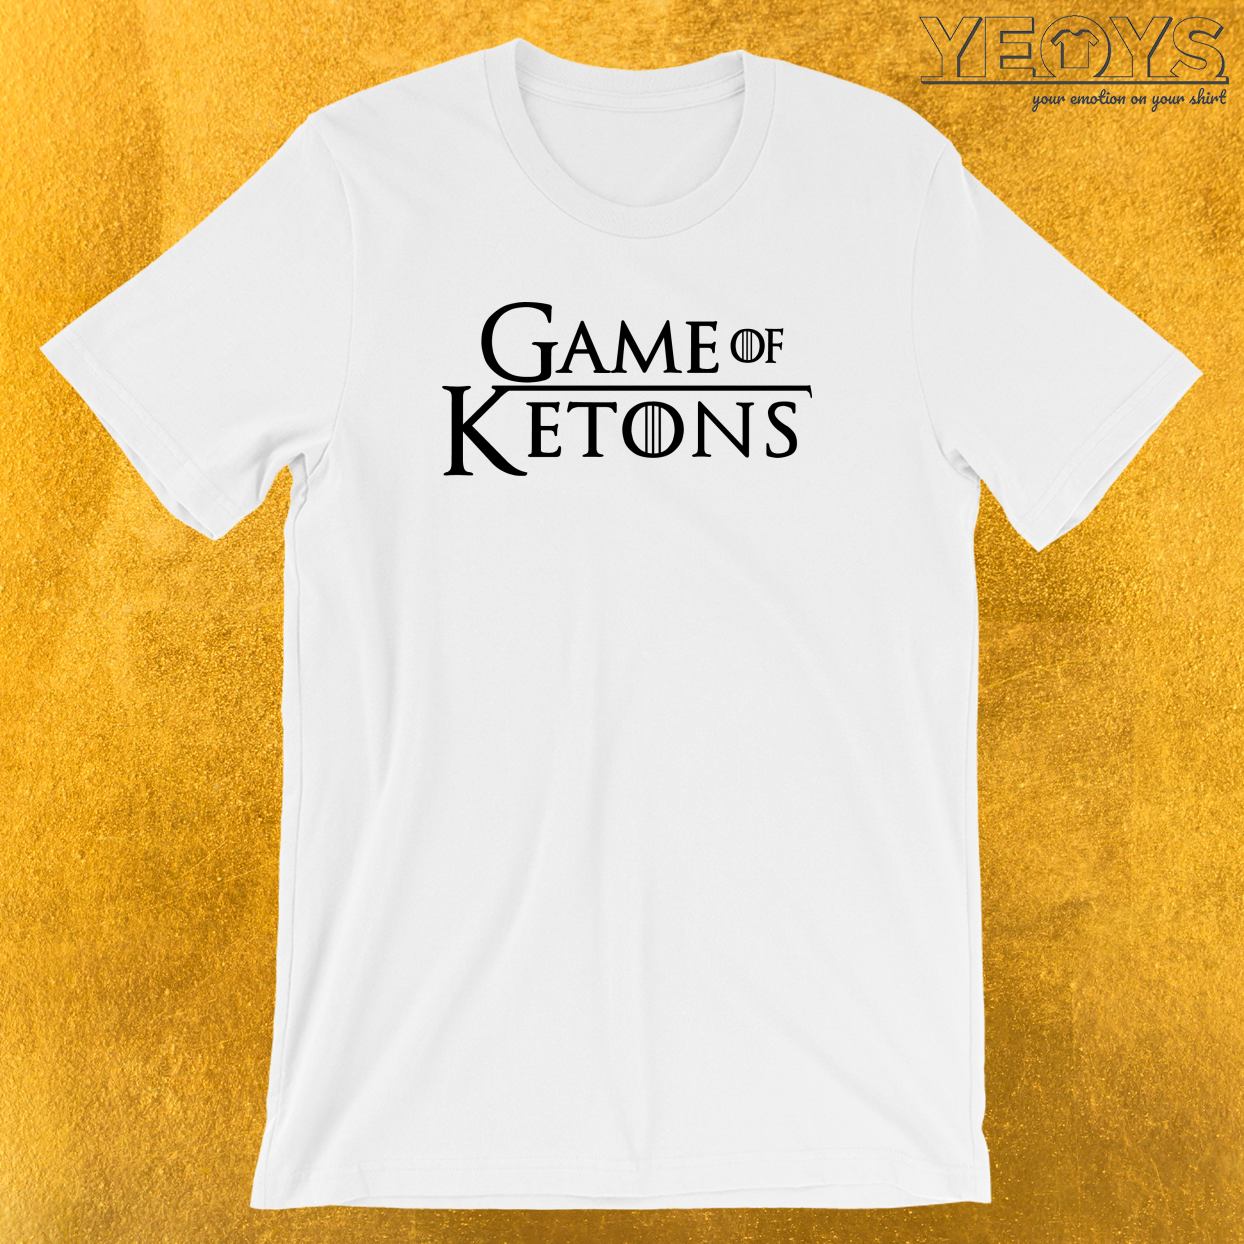 Game Of Ketons T-Shirt